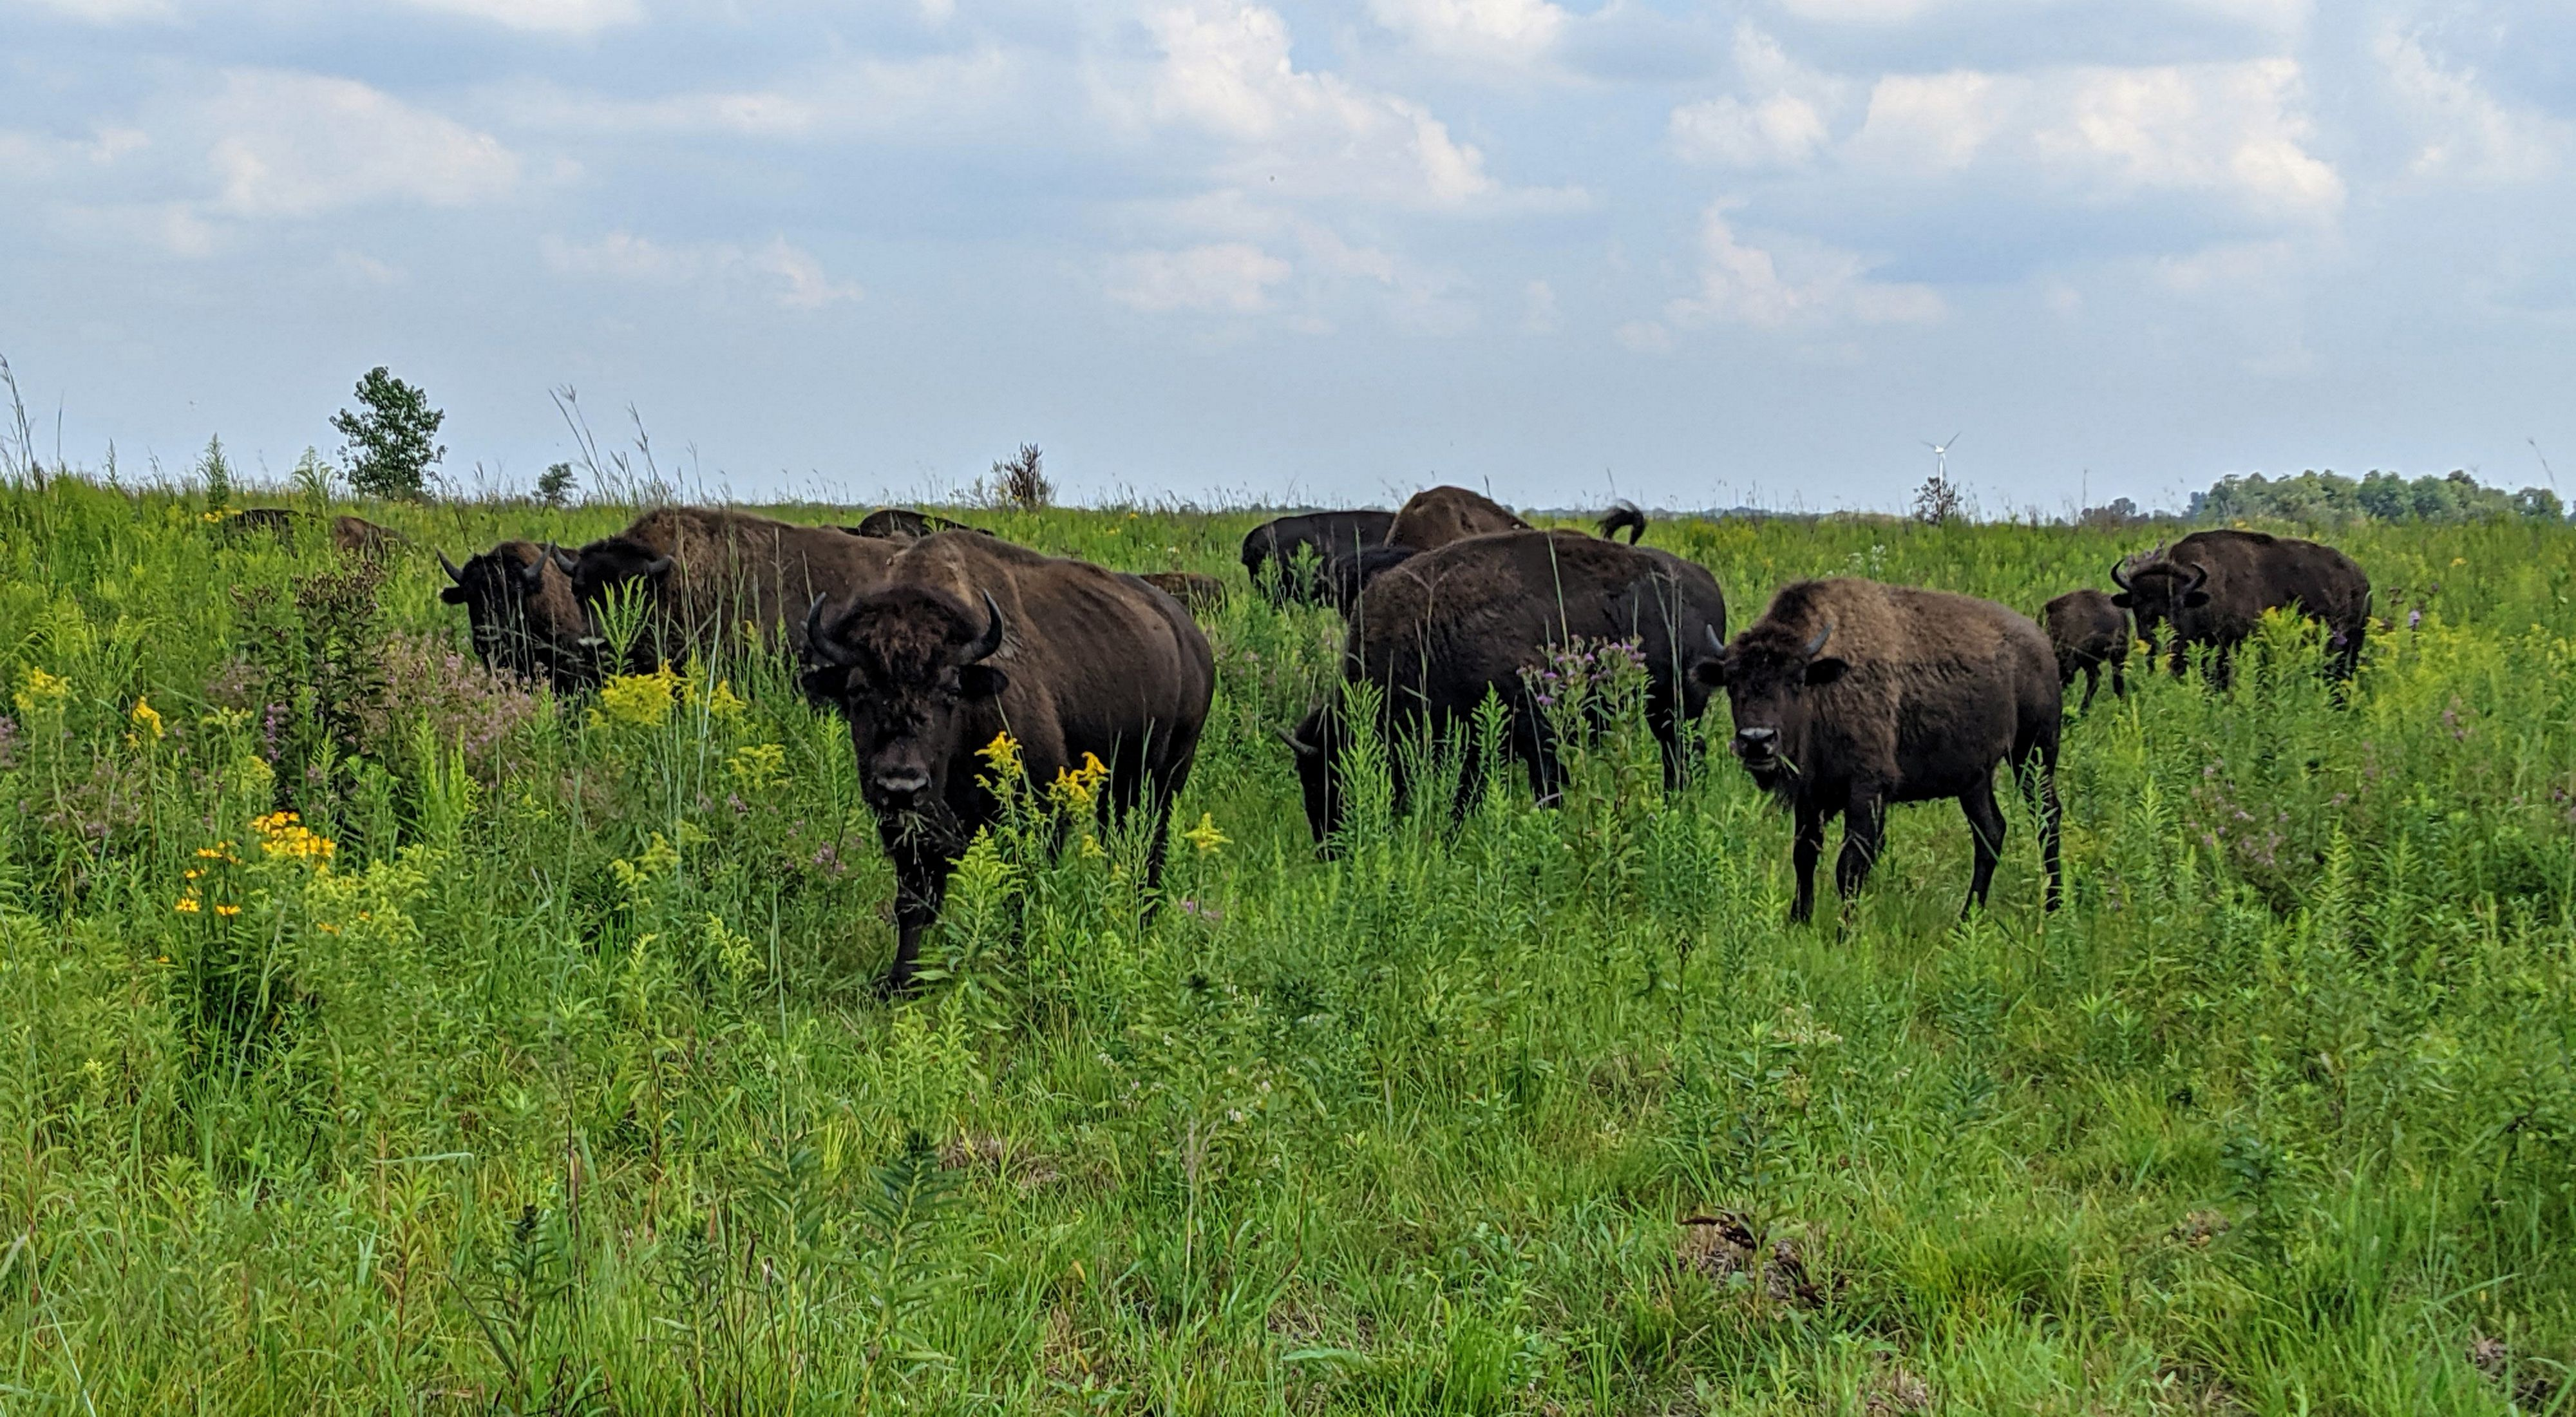 Herd of bison on lush green prairie under a lightly cloudy blue sky.